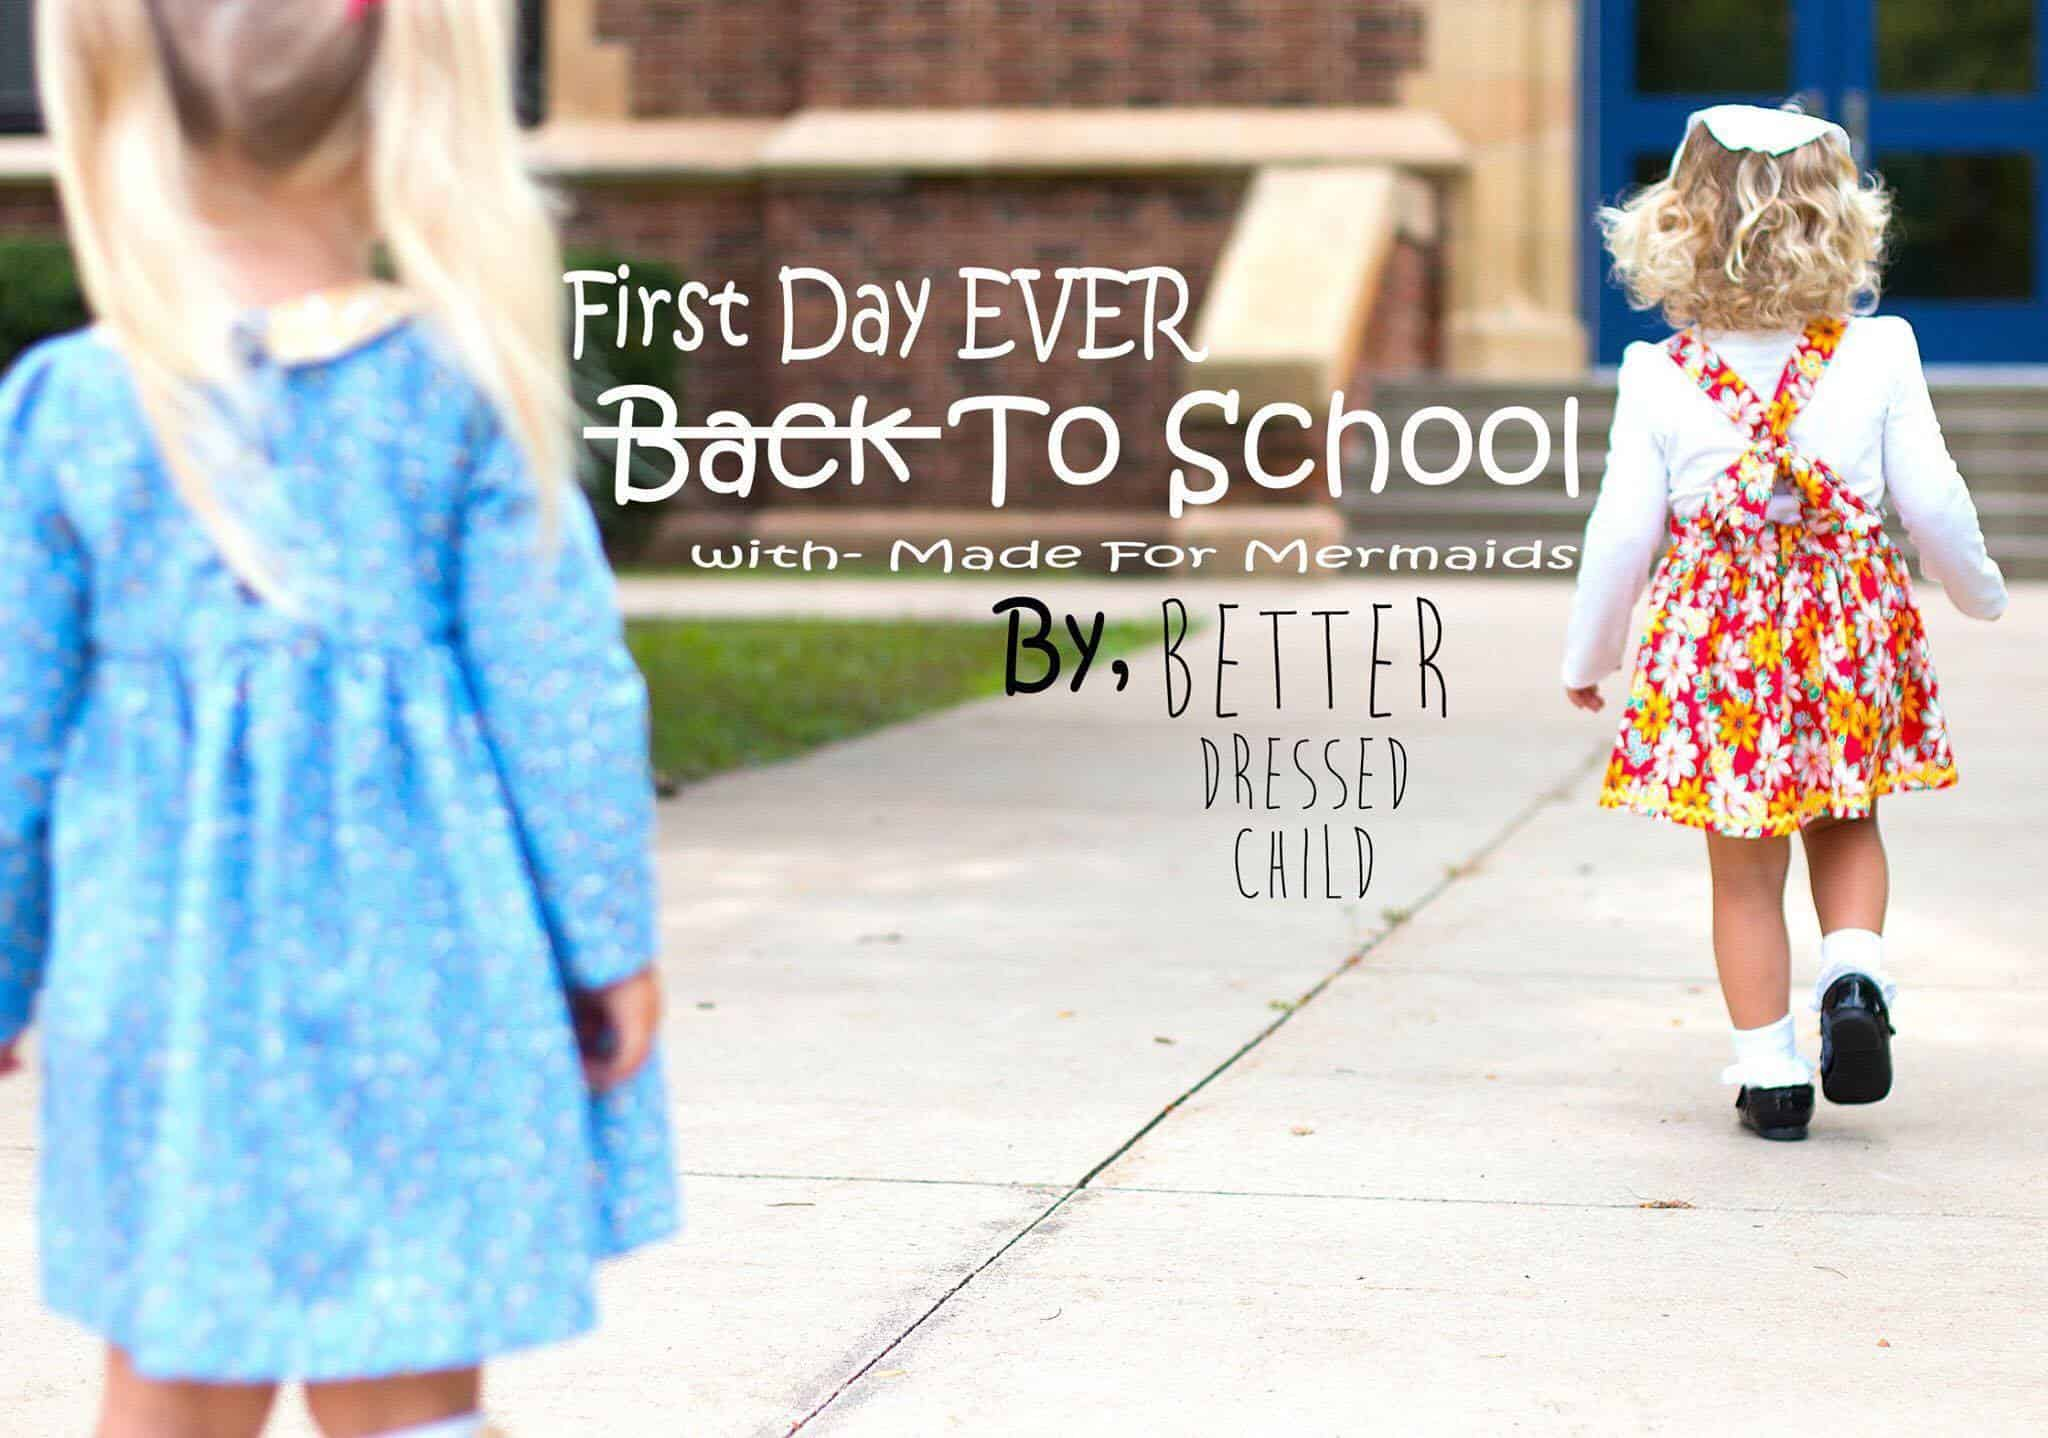 Back to School Blog Tour Day 5